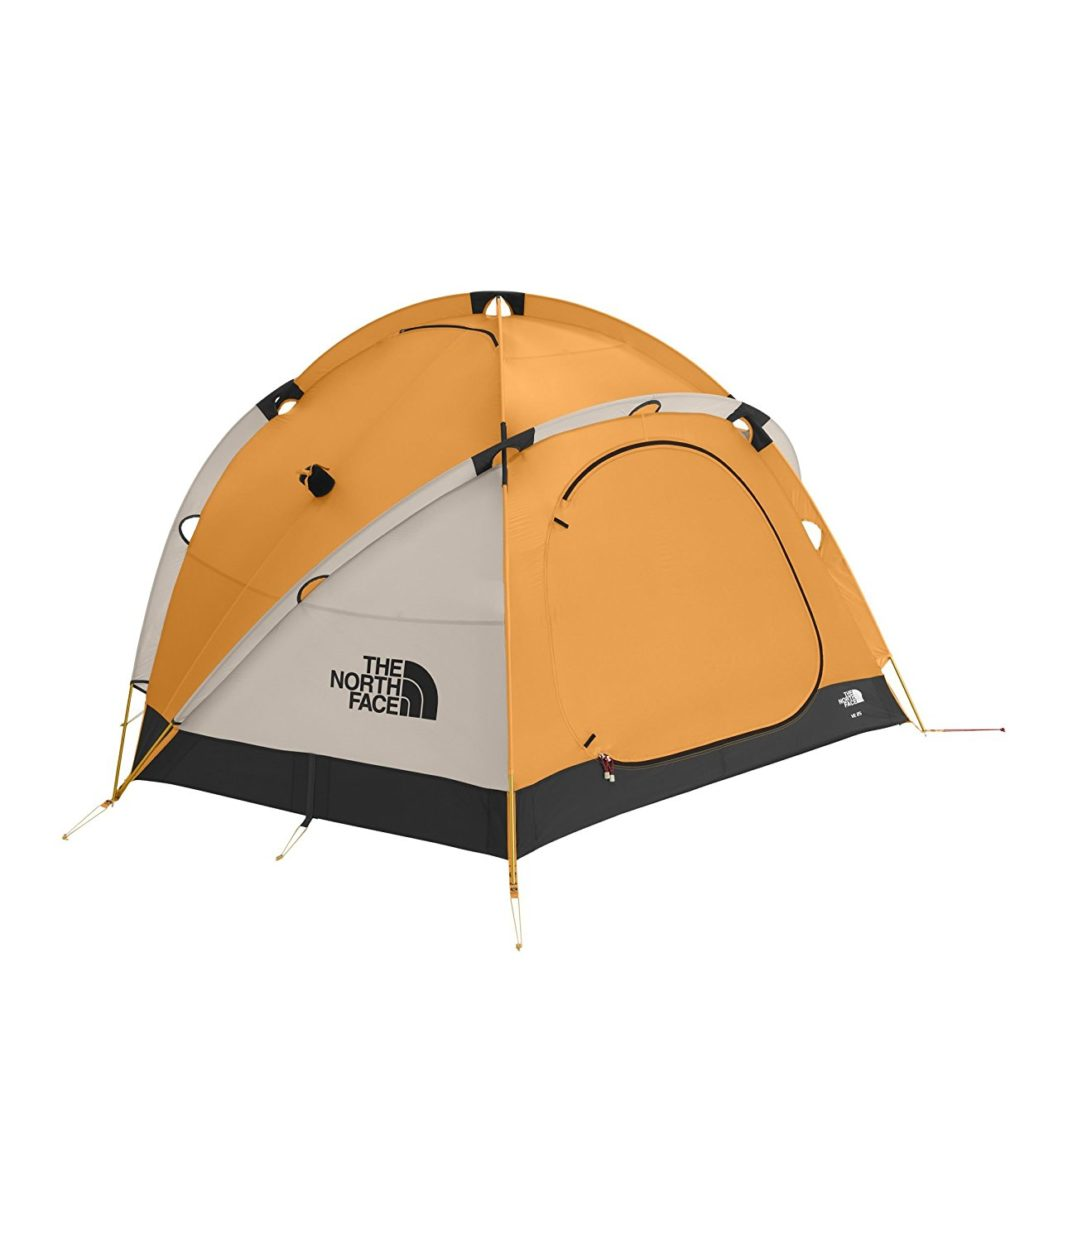 best tents, best family camping tents, car camping tent, best 4 person tent, best 6 person tent, best car camping tent, best family tent, top rated tents, camping tent reviews, best rated tents, good tents, camping tents, best tent for the money, top rated camping tents, good camping tents, best 4 person camping tent, high quality tents, top camping tents, best 4 person car camping tent, quality tents, the best camping tents, best rated camping tents, stand up tents for camping, best 6 man tent, best four person tent, the best tents, high end tents, best tent in the world, best tent brands, best 5 person tent, best tent ever, luxury camping tents, tent ratings, new camping tents, best quality tents, ultimate camping tent, best tent to buy, comfortable tents, best waterproof tent, stand up tent, tent reviews, rei base camp 6, best 8 person tent, waterproof tent, waterproof camping tents, best tents for rain, best camping tents, big camping tents, camping house, family camping tents, best tent for family of 4, best family tents for bad weather, easy set up family camping tents, house tents for camping, family size tents, family tents, waterproof camping tents family, family tent reviews, great tents for family camping, large camping tents, best cabin tents, best large tents, huge camping tents, top tents for family camping, nice camping tents, good value family tents, family size tents camping, best large camping tents, best family size tents, who makes the best family tents, two room tent, camping tents you can stand up in, family dome tent, family tent easy setup, cheap family tents, best dome tent, cabela's cabin tent, best 3 season family camping tent, tent for family of 4, 4 season family tent, large family tents, best 2 room tent, best 6 person camping tent, best budget tent, coleman tents, best tents for stargazing, small camping tent, best outdoor tent, durable tents